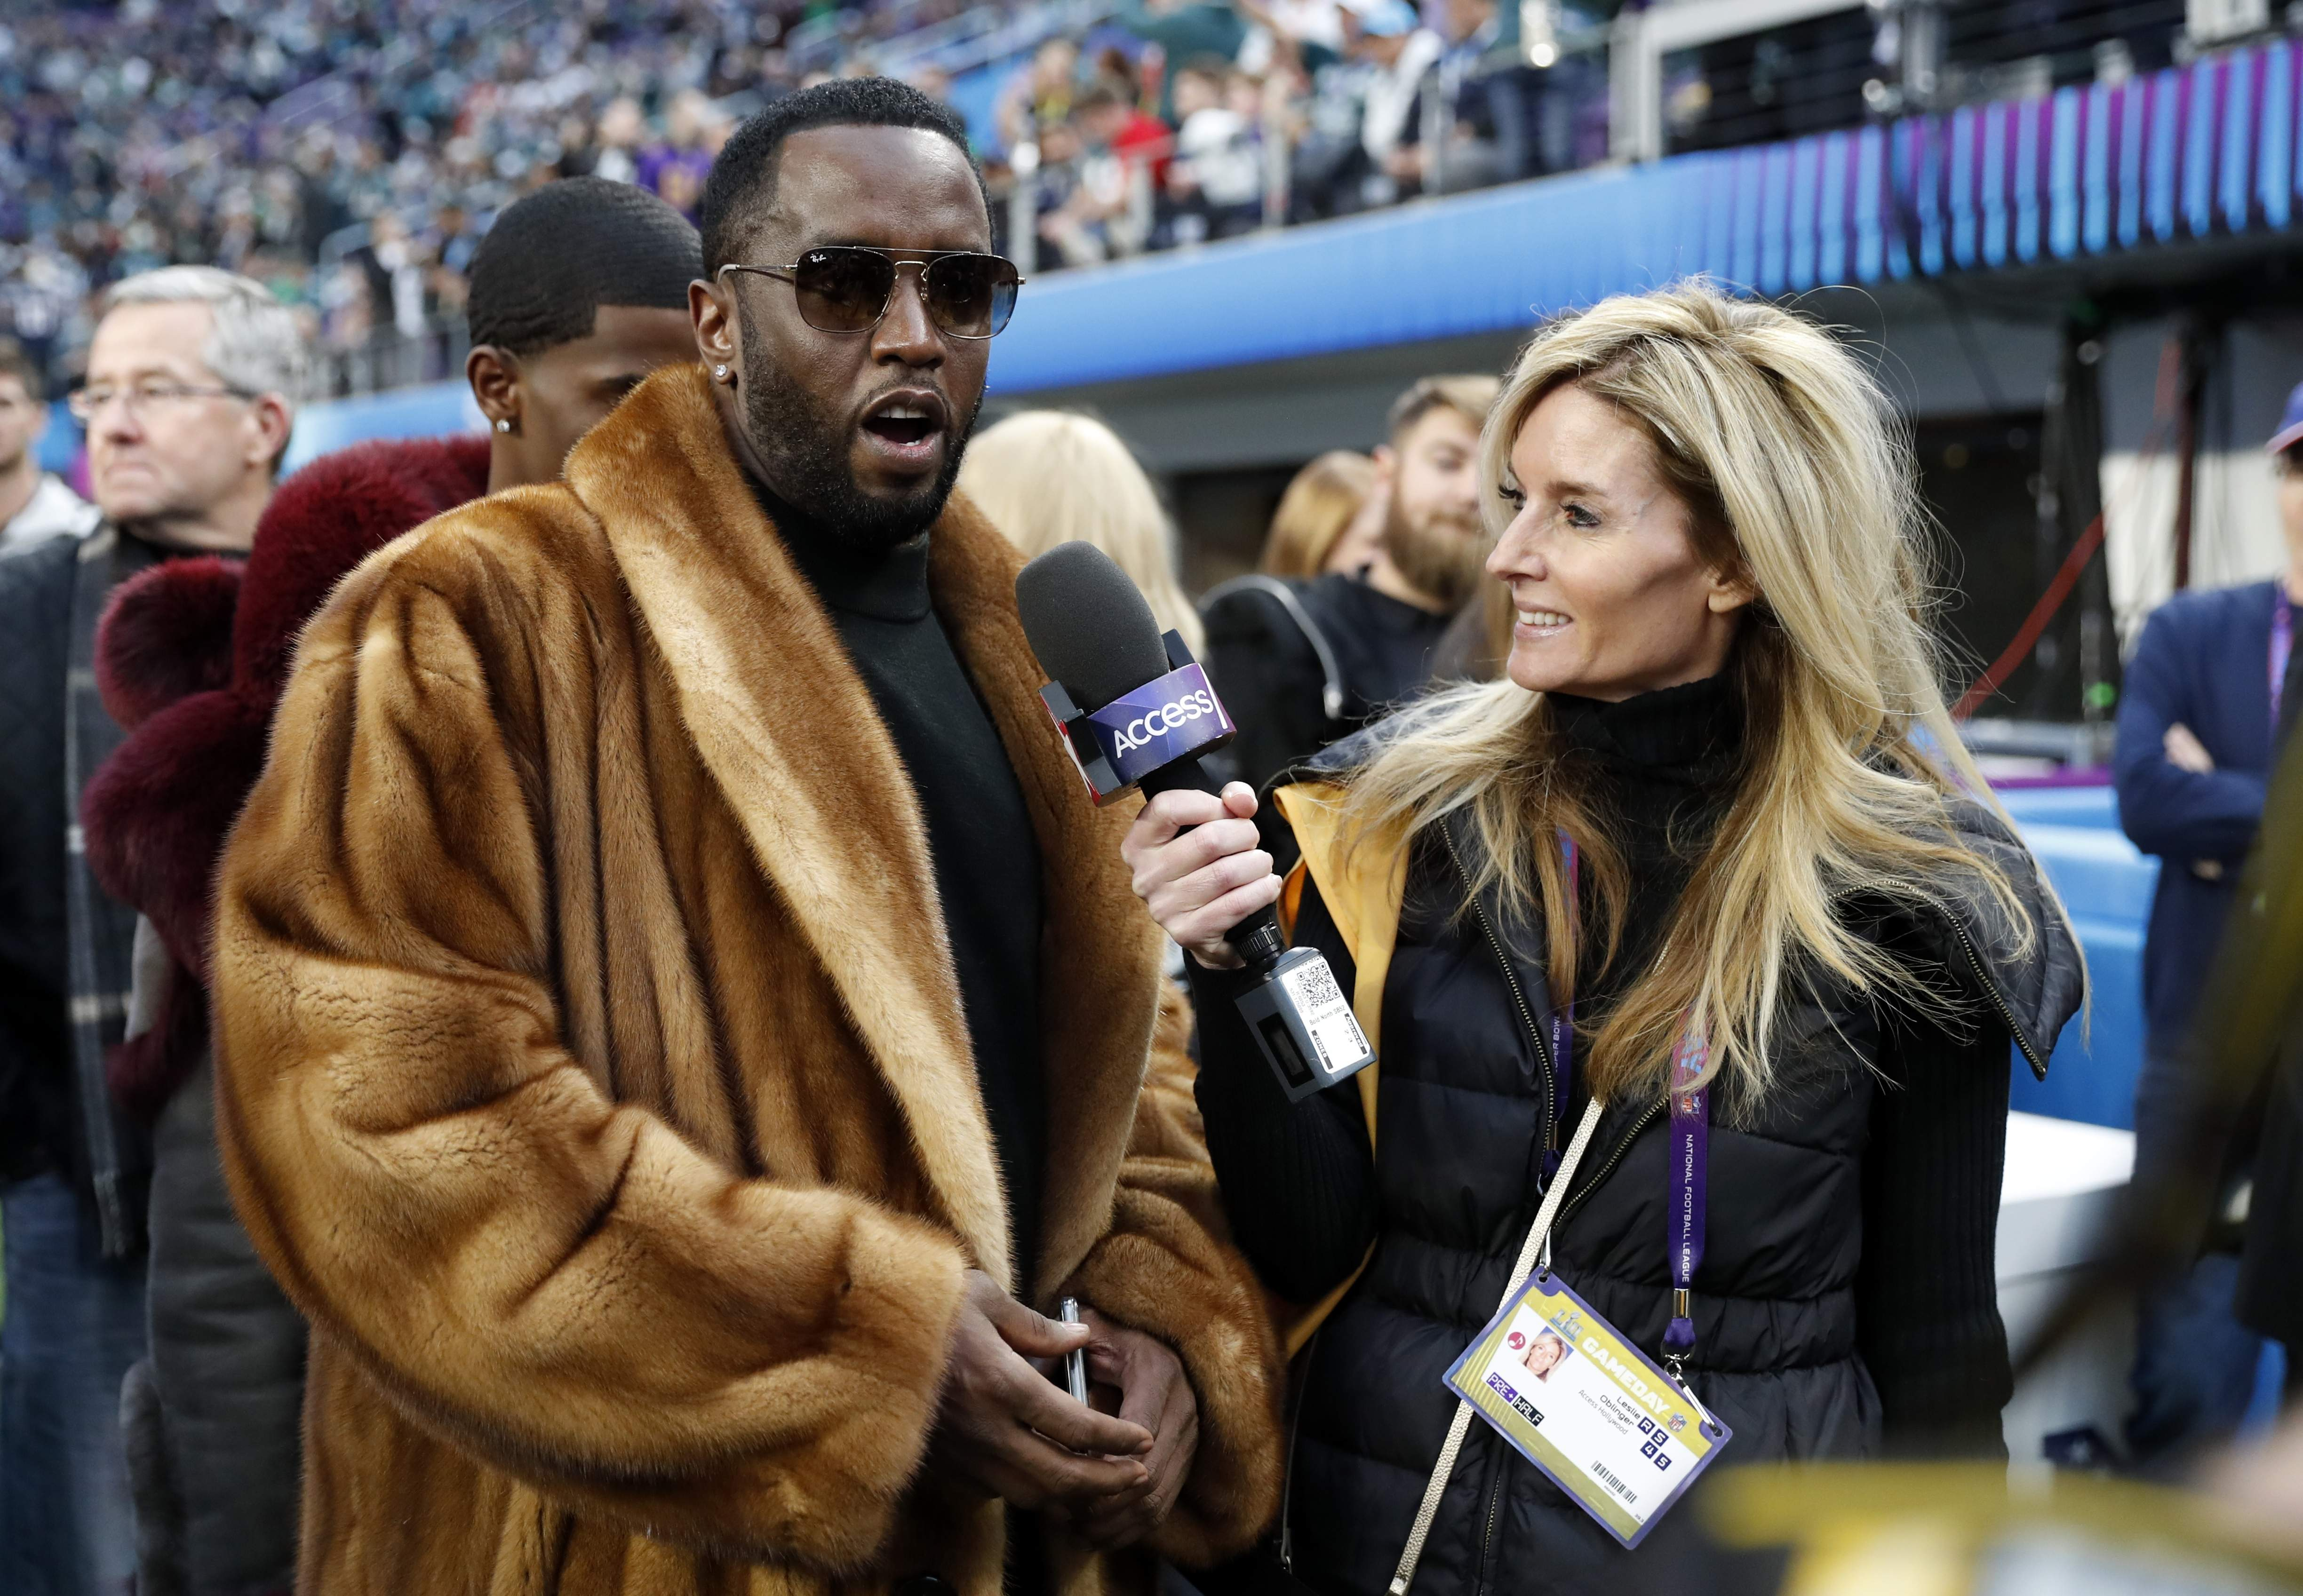 Musician Sean 'P. Diddy' Combs, left, is interviewed before the NFL Super Bowl 52 football game between the Philadelphia Eagles and the New England Patriots Sunday, Feb. 4, 2018, in Minneapolis. (AP Photo/Matt York)